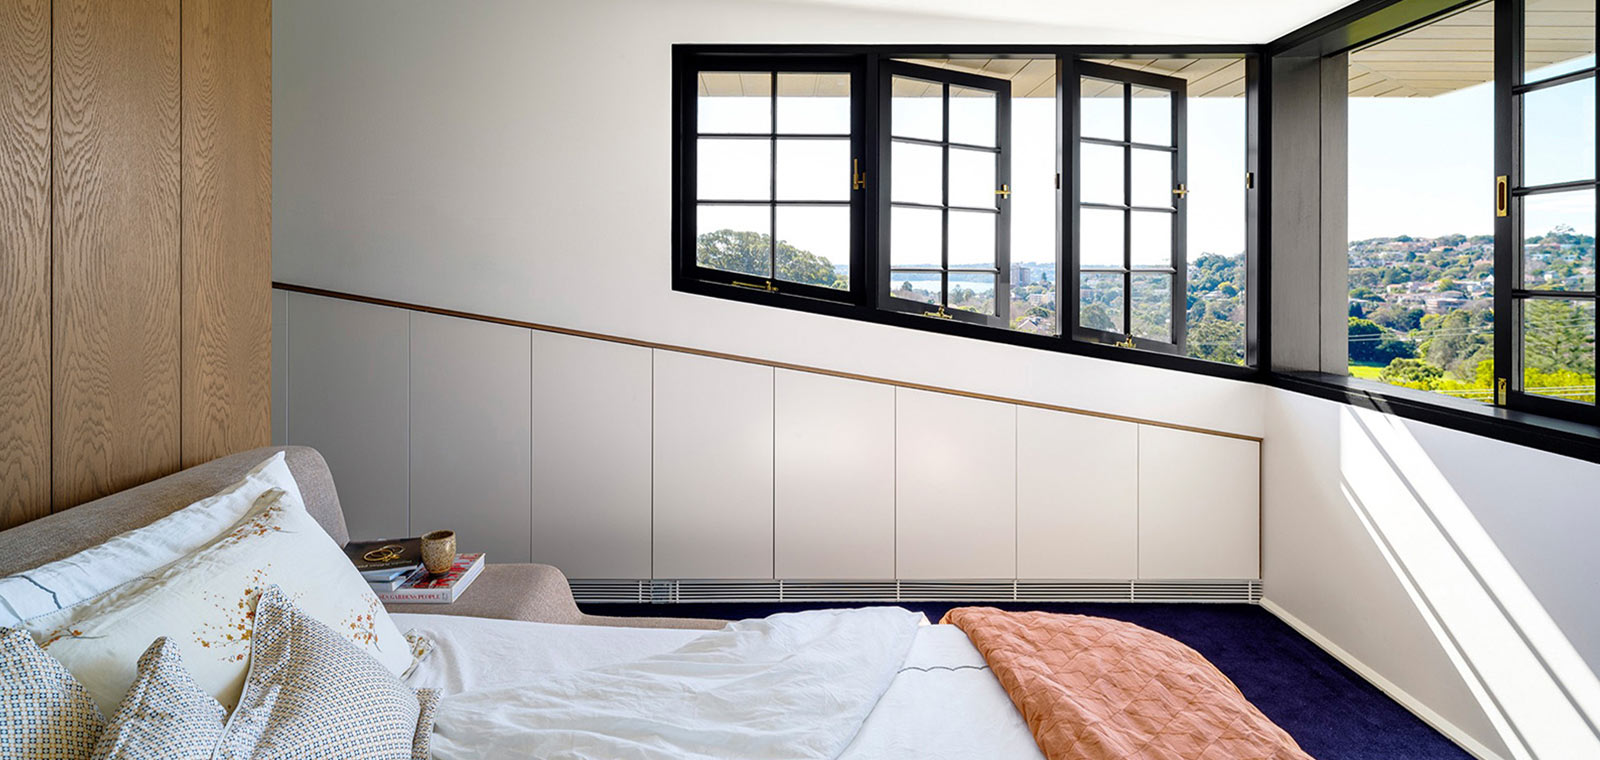 Bougainvillea Row House by Luigi Rosselli Architects - Amazing view from the bedroom of the house